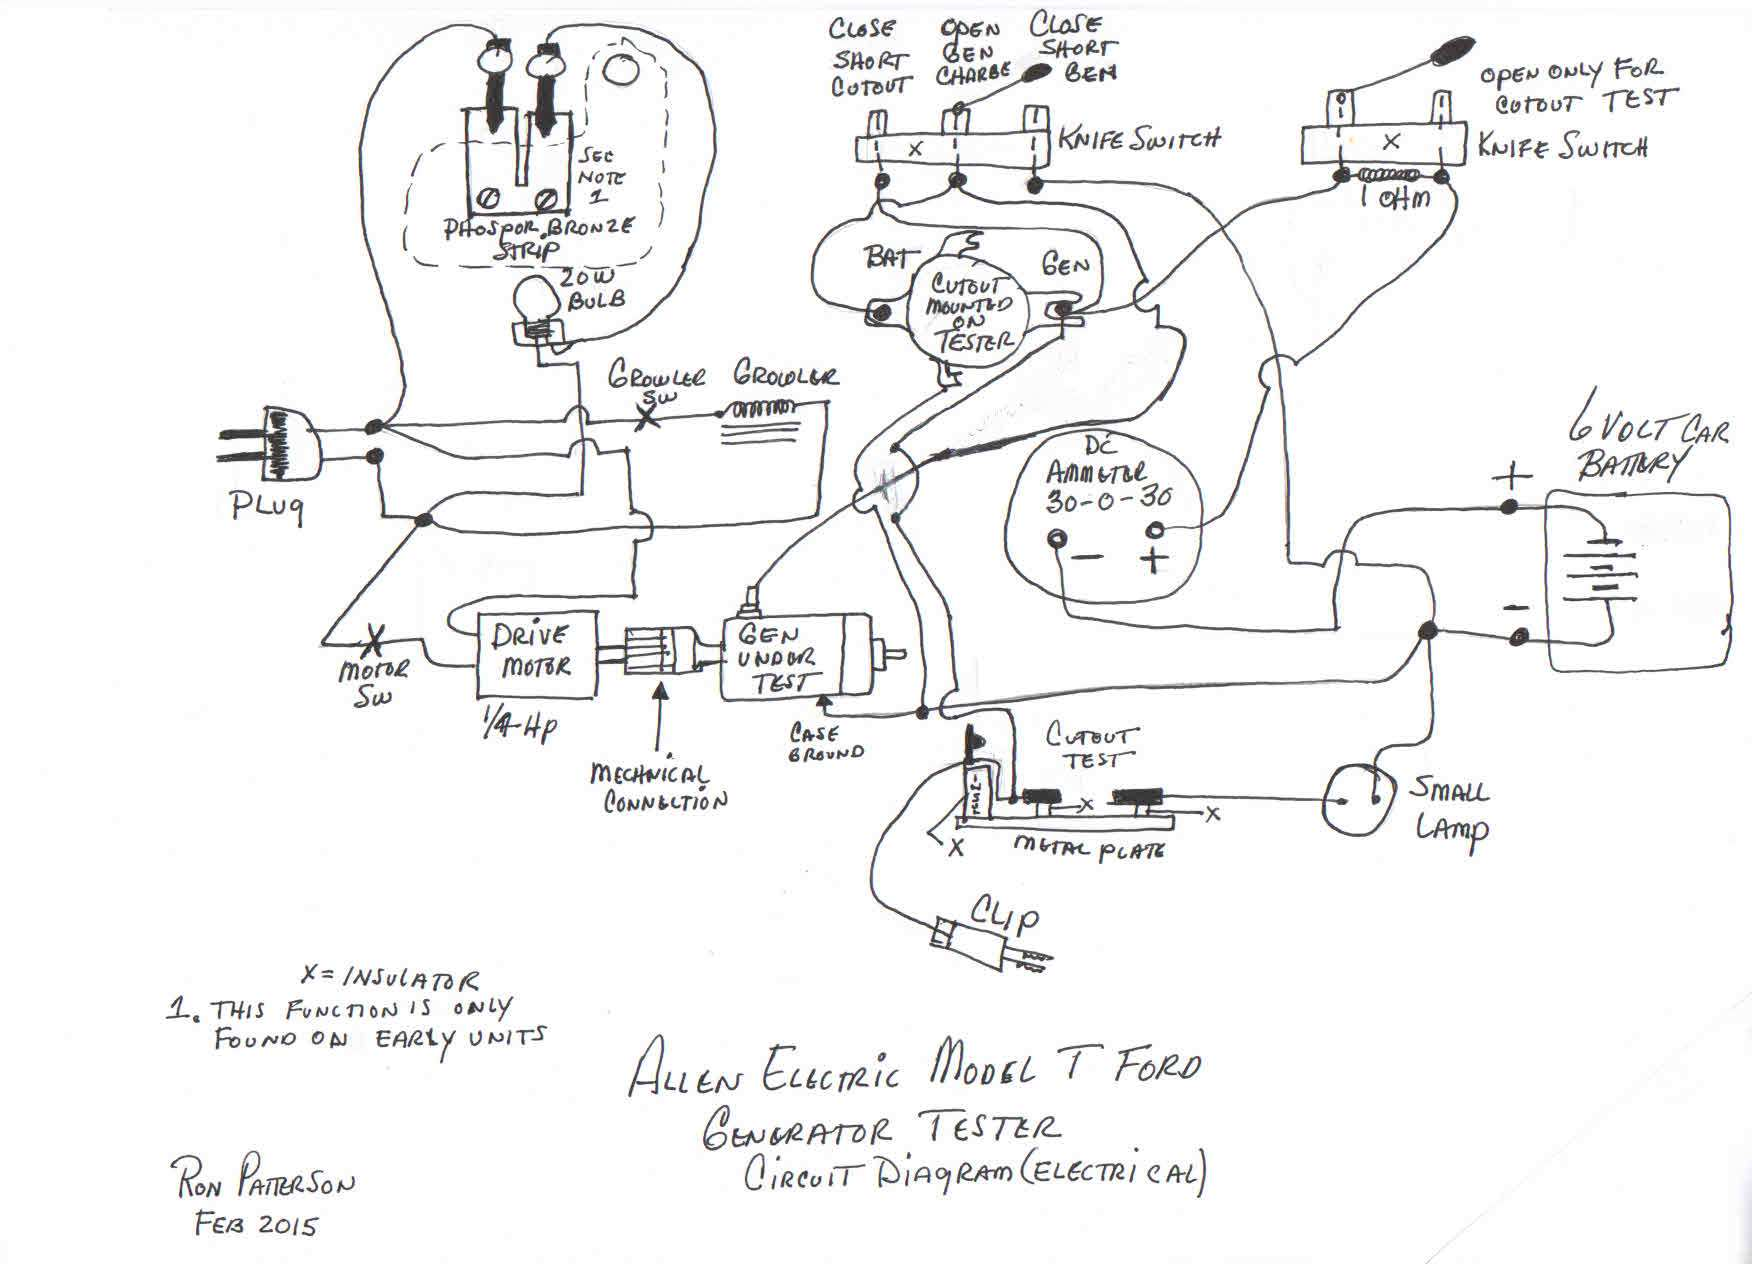 model t ford forum: allen electric generator tester wiring ... model a wiring schematics 1928 ford tudor model a wiring diagram #14